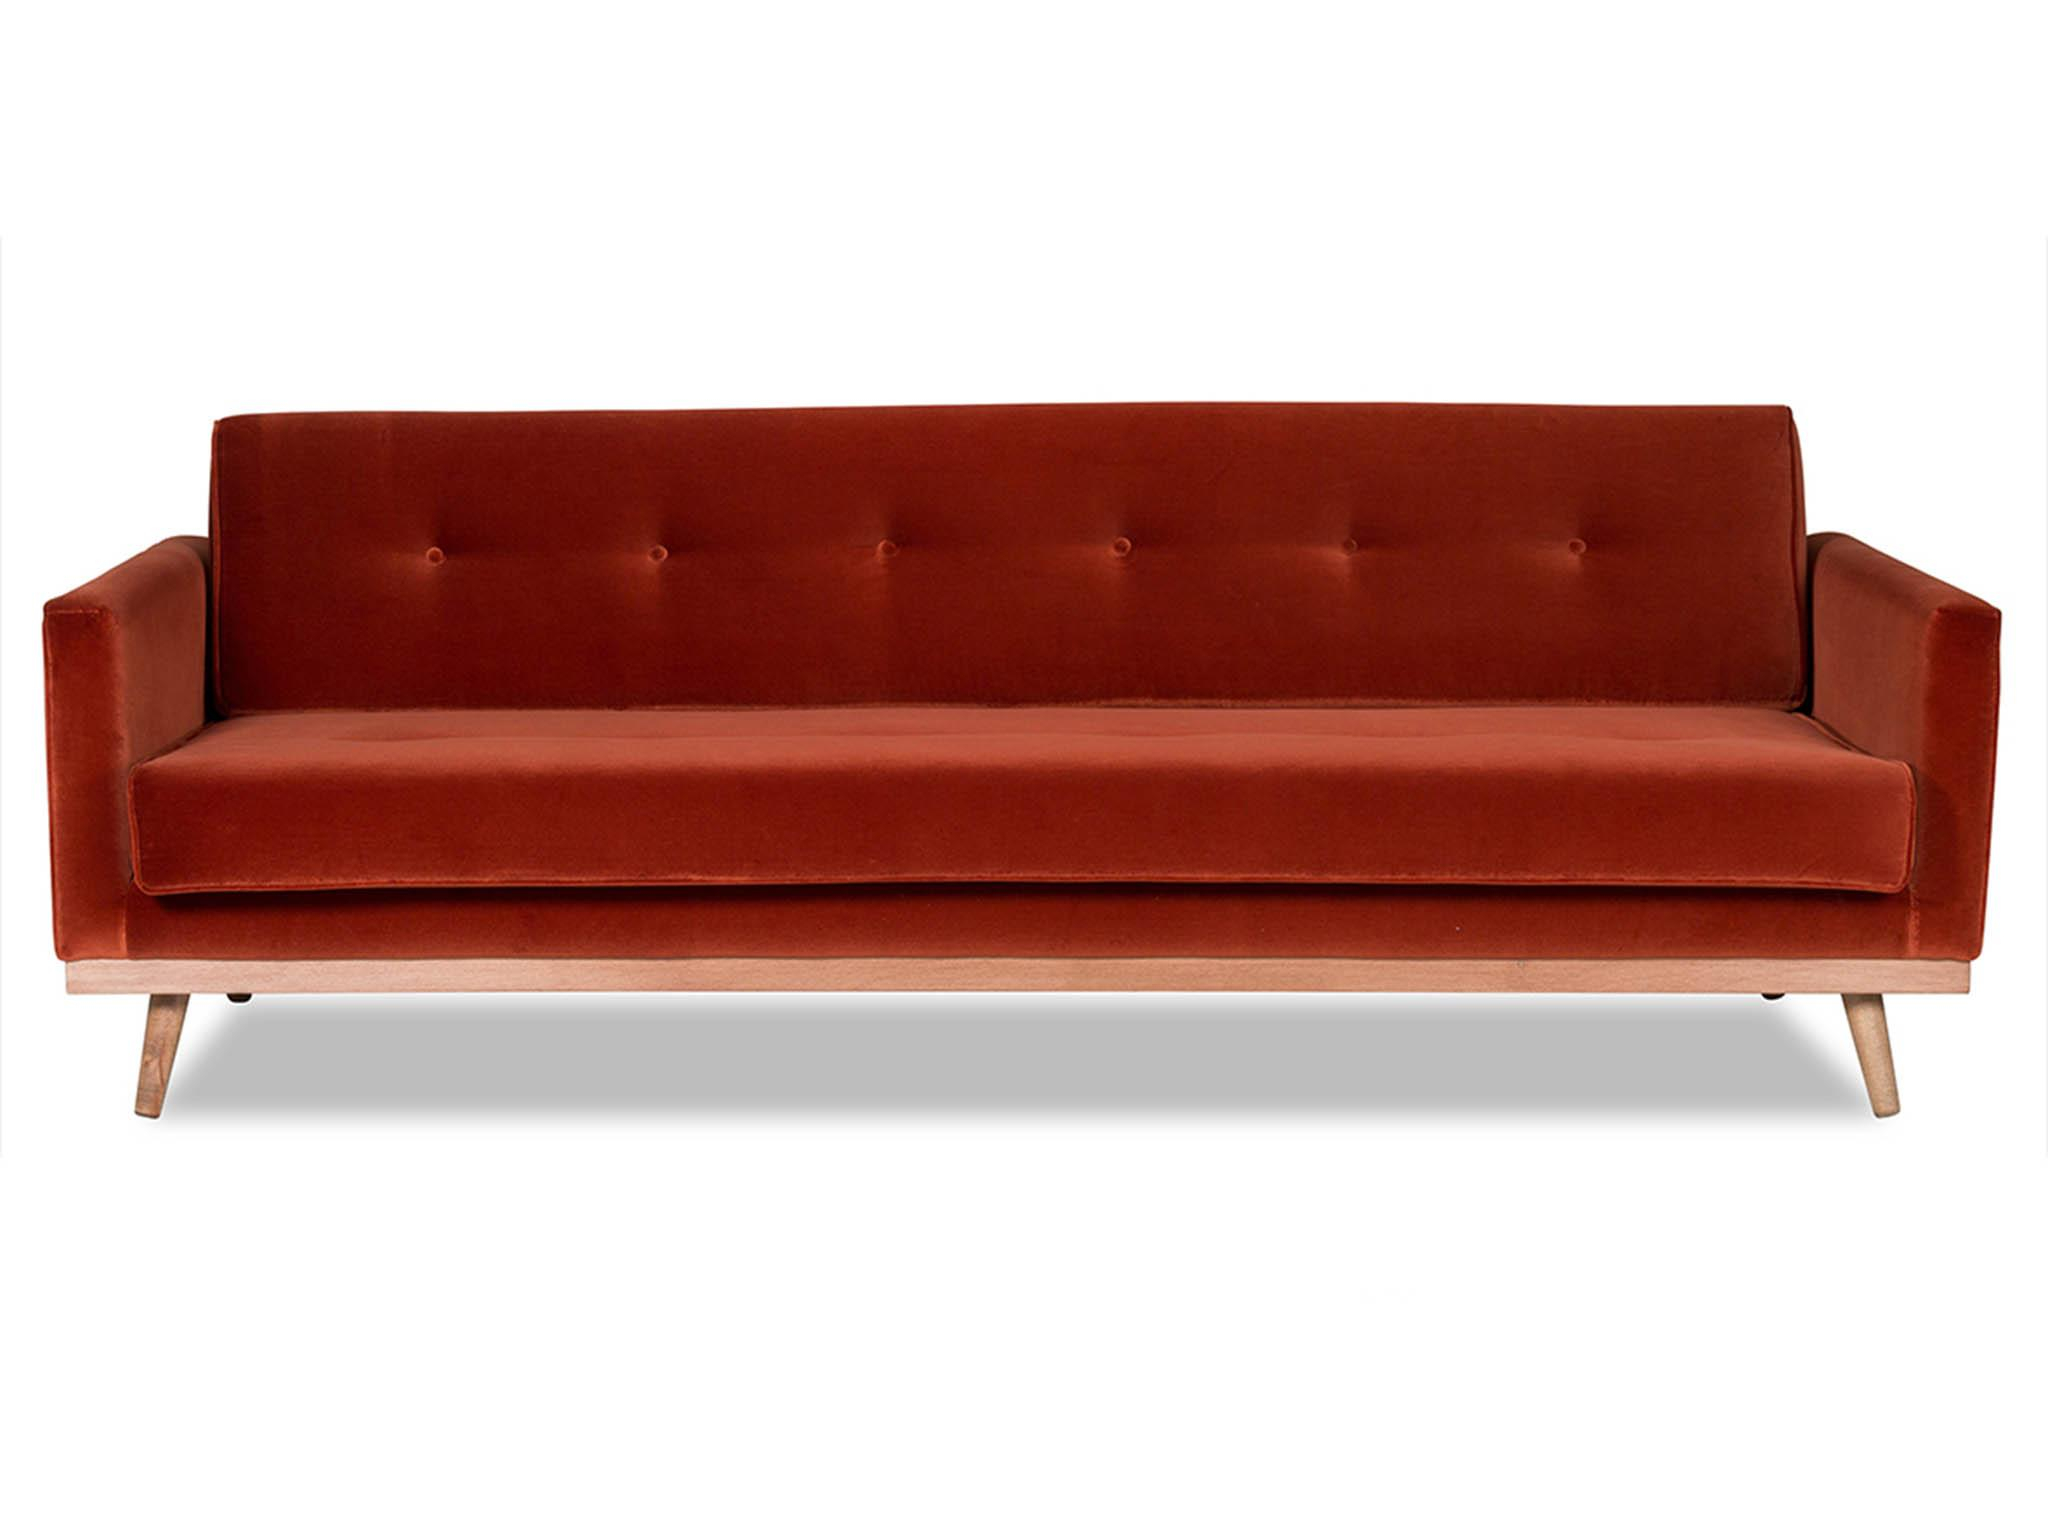 Best Sofa Bed Thats Comfy Stylish And Practical with regard to measurements 2048 X 1536